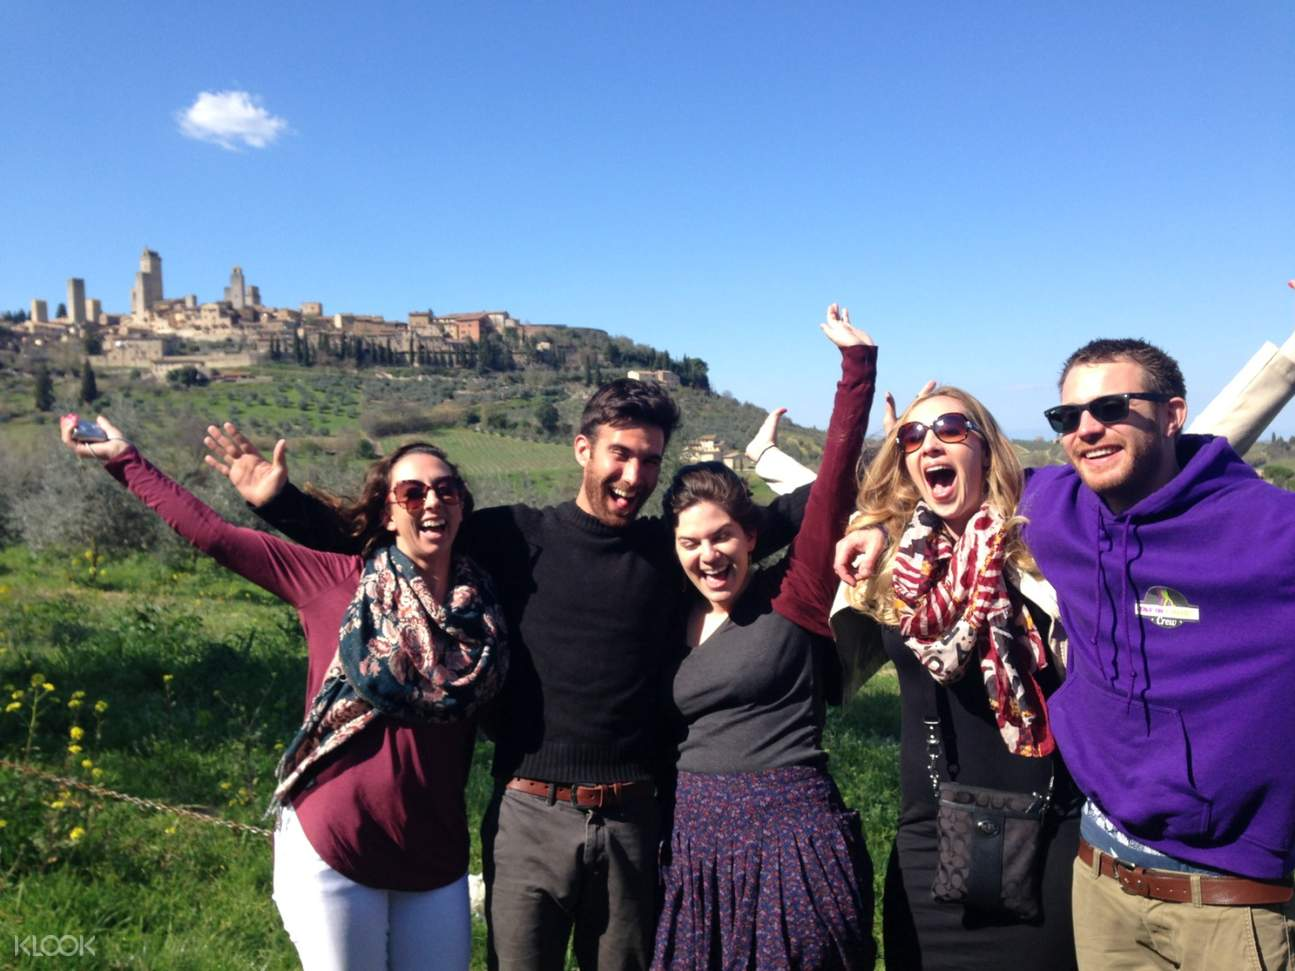 group of tourists posing with the tuscany medieval town in background